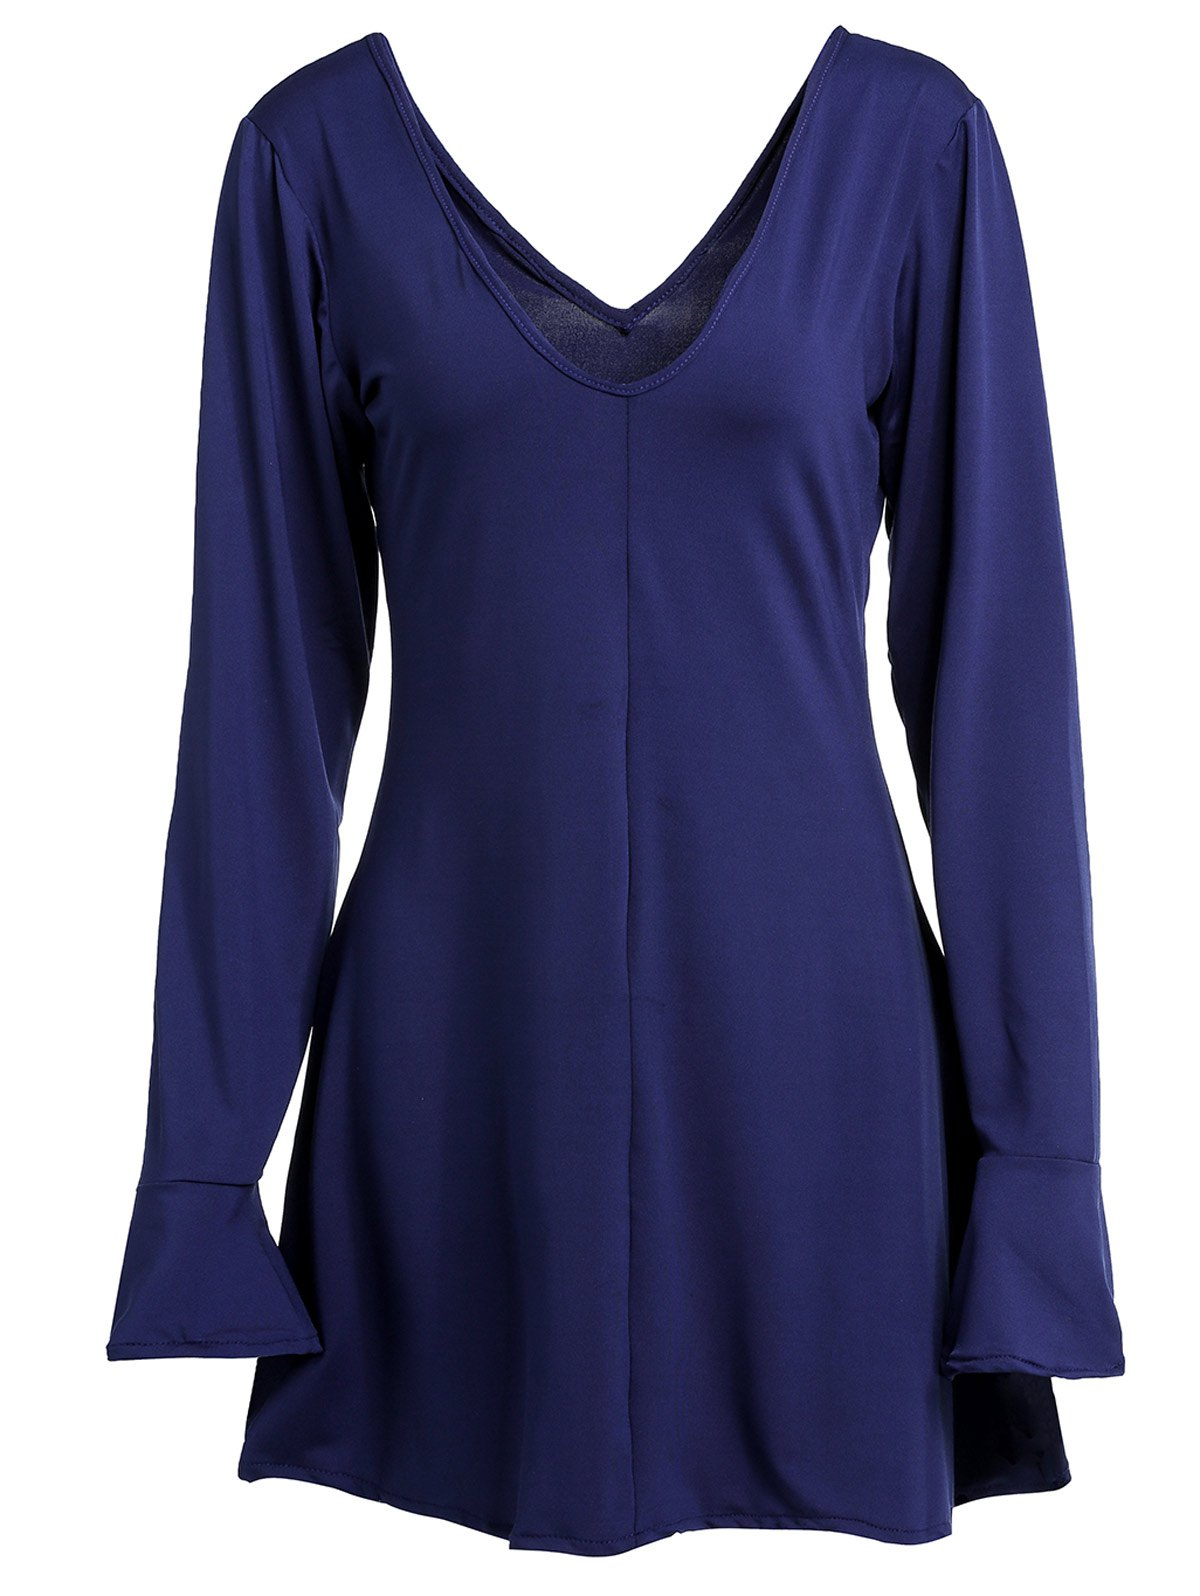 Sexy Deep Blue Plunging Neck Open Back Long Sleeve Dress For Women